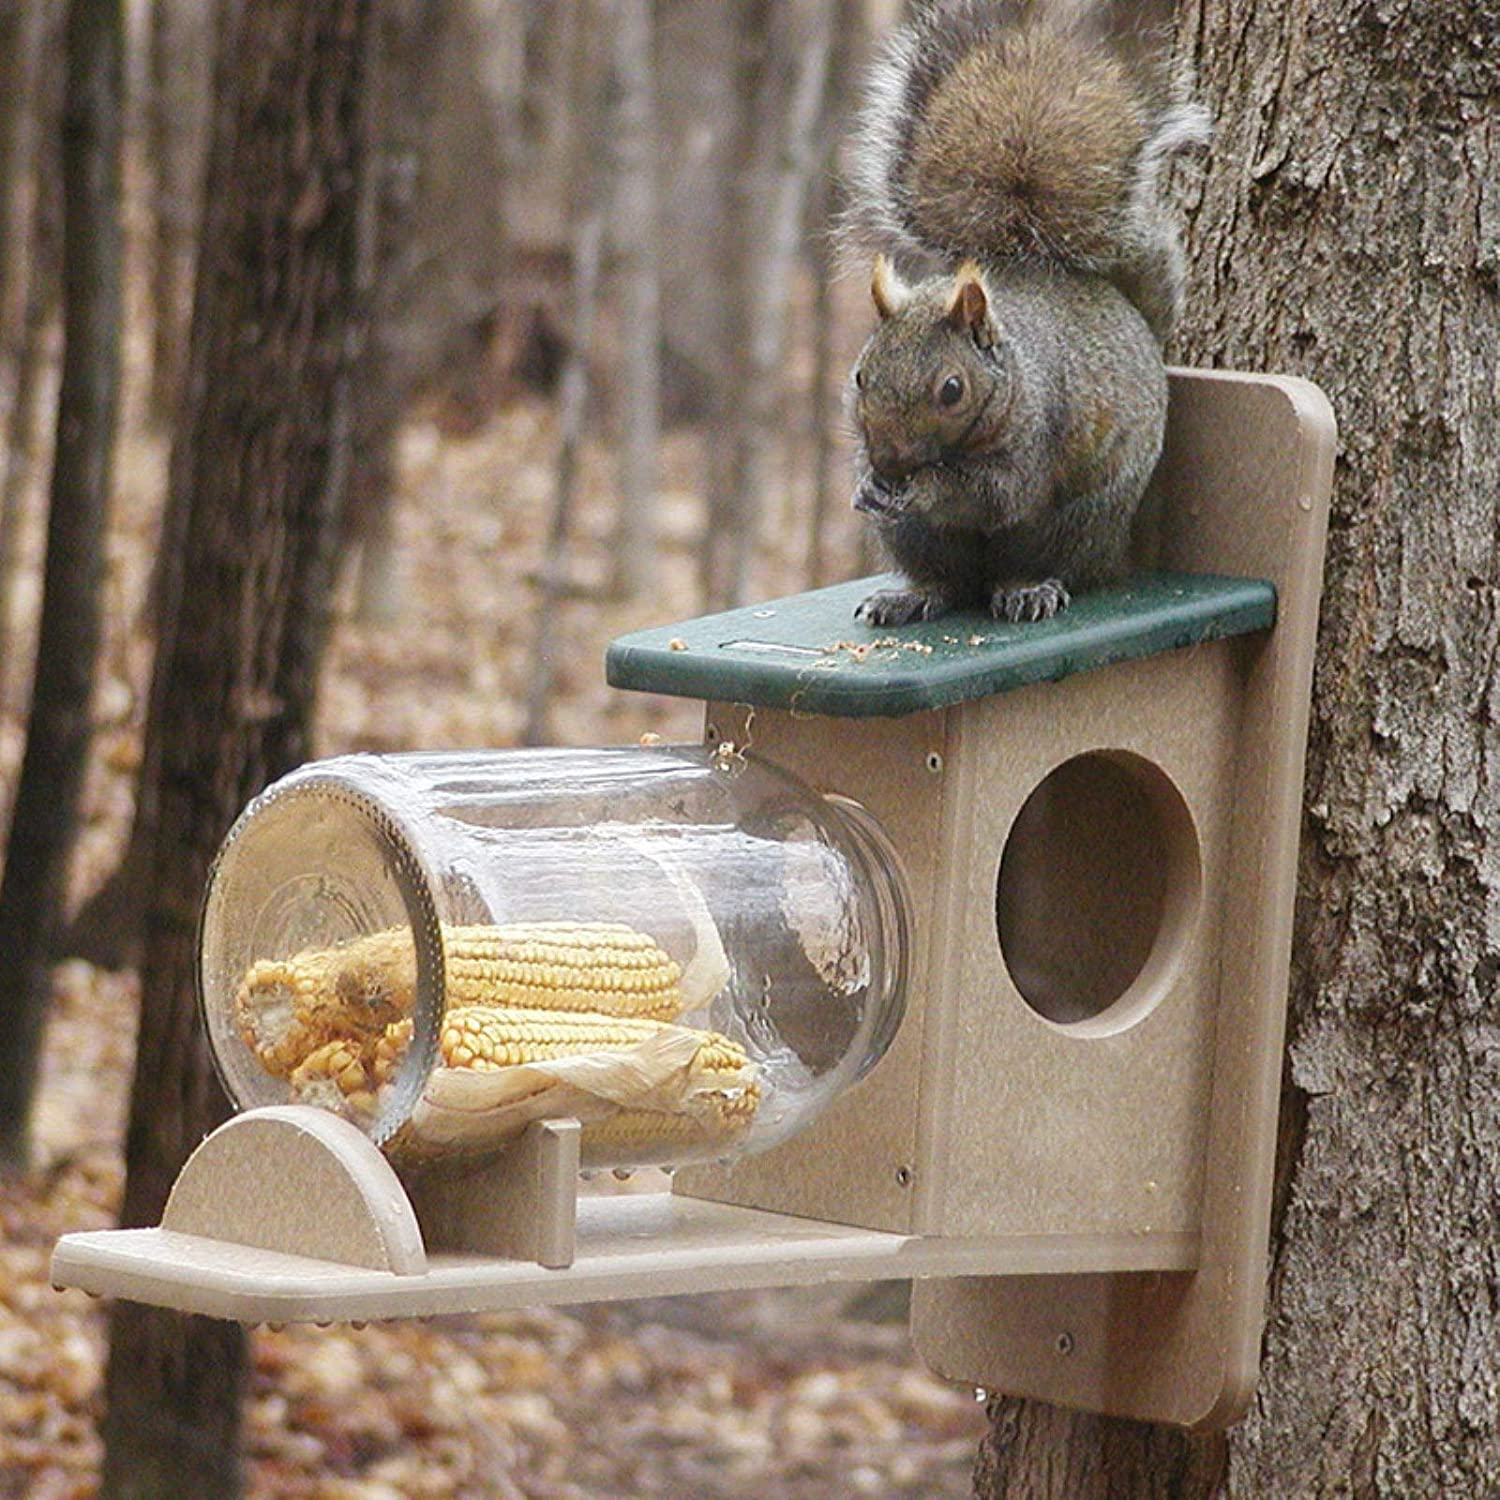 Birds Choice Squirrel Jar Feeder